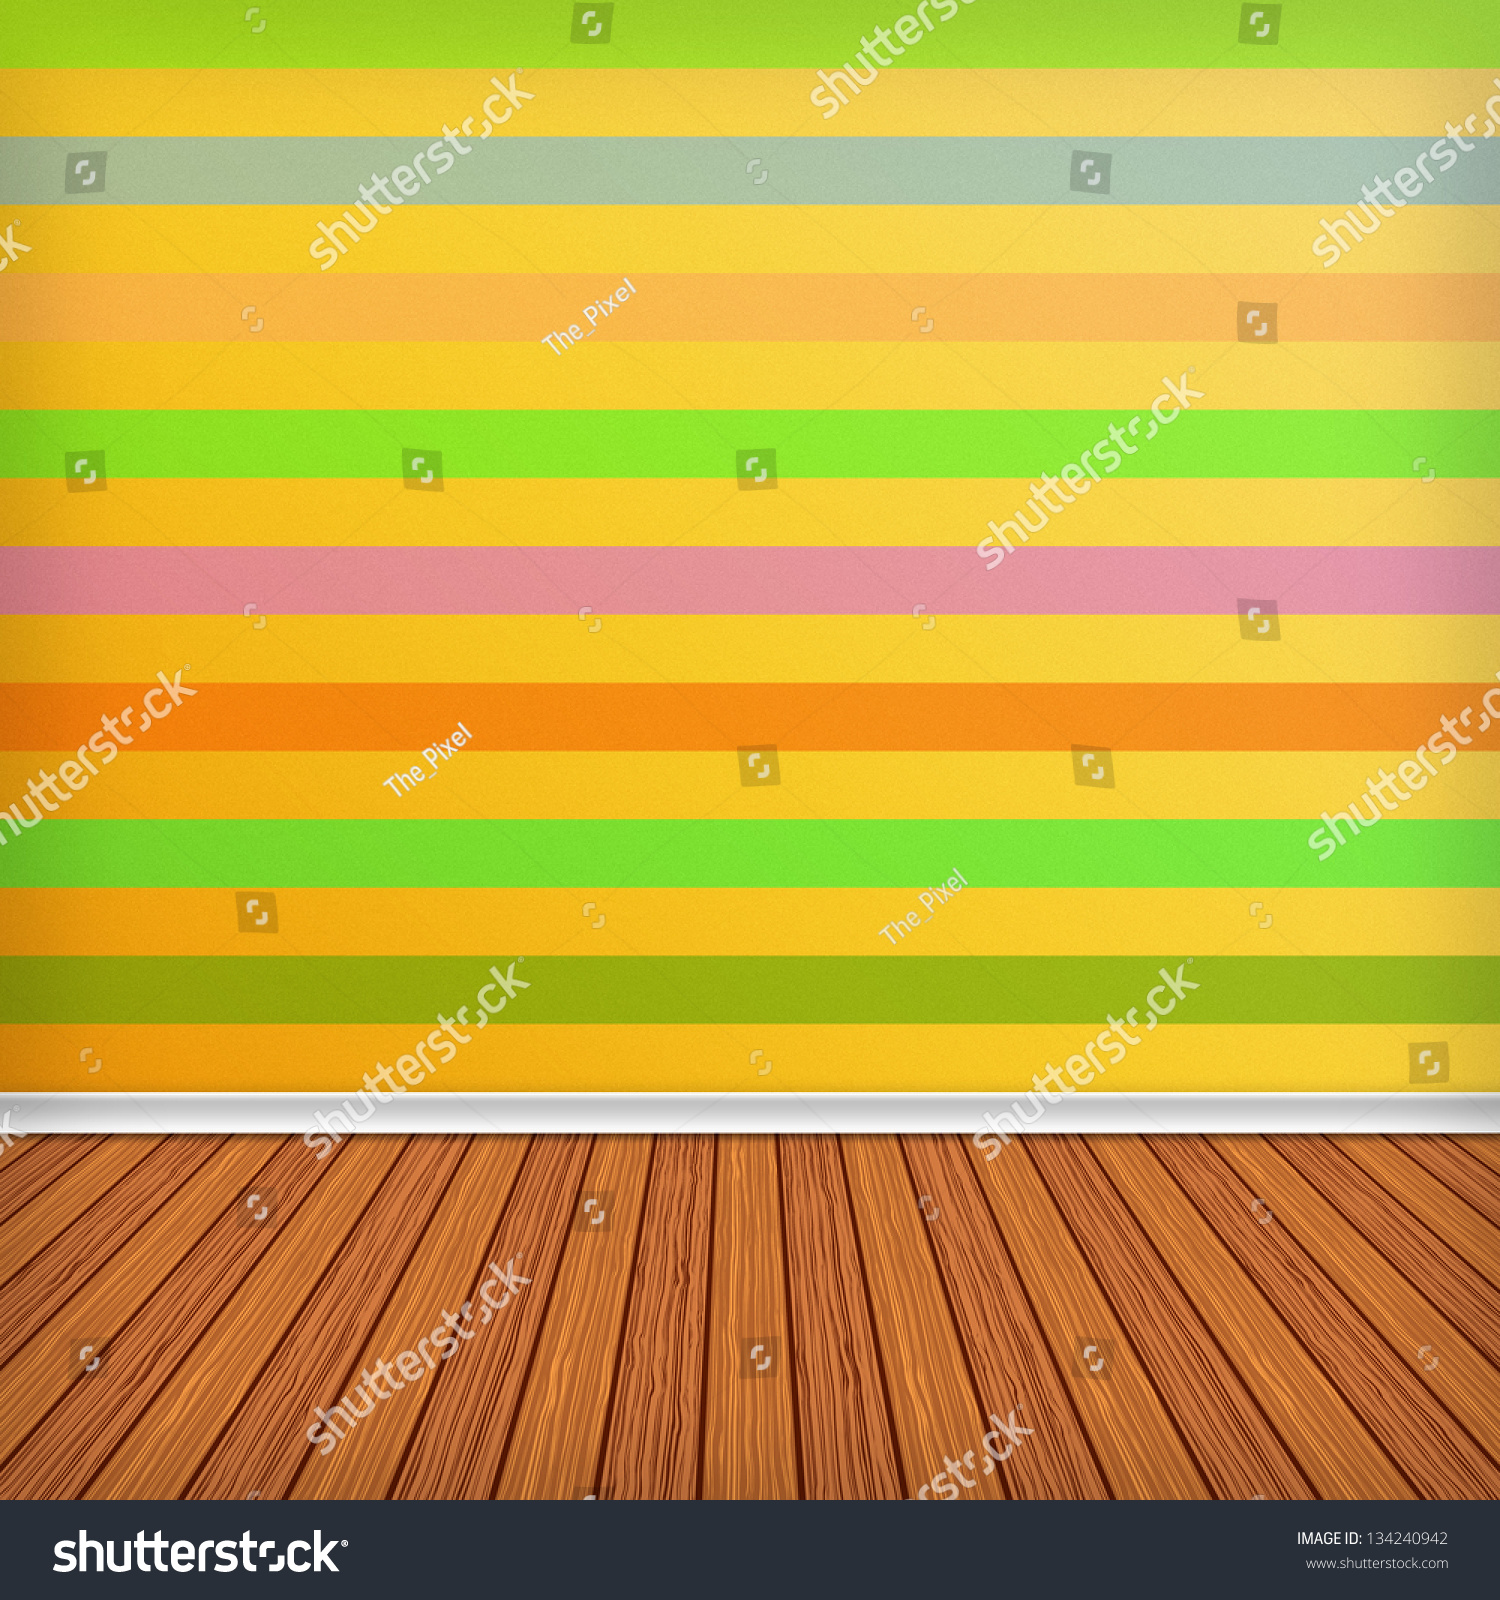 Top Wallpaper High Quality Texture - stock-photo-empty-room-interior-with-wallpaper-high-resolution-texture-background-134240942  HD_487425.jpg